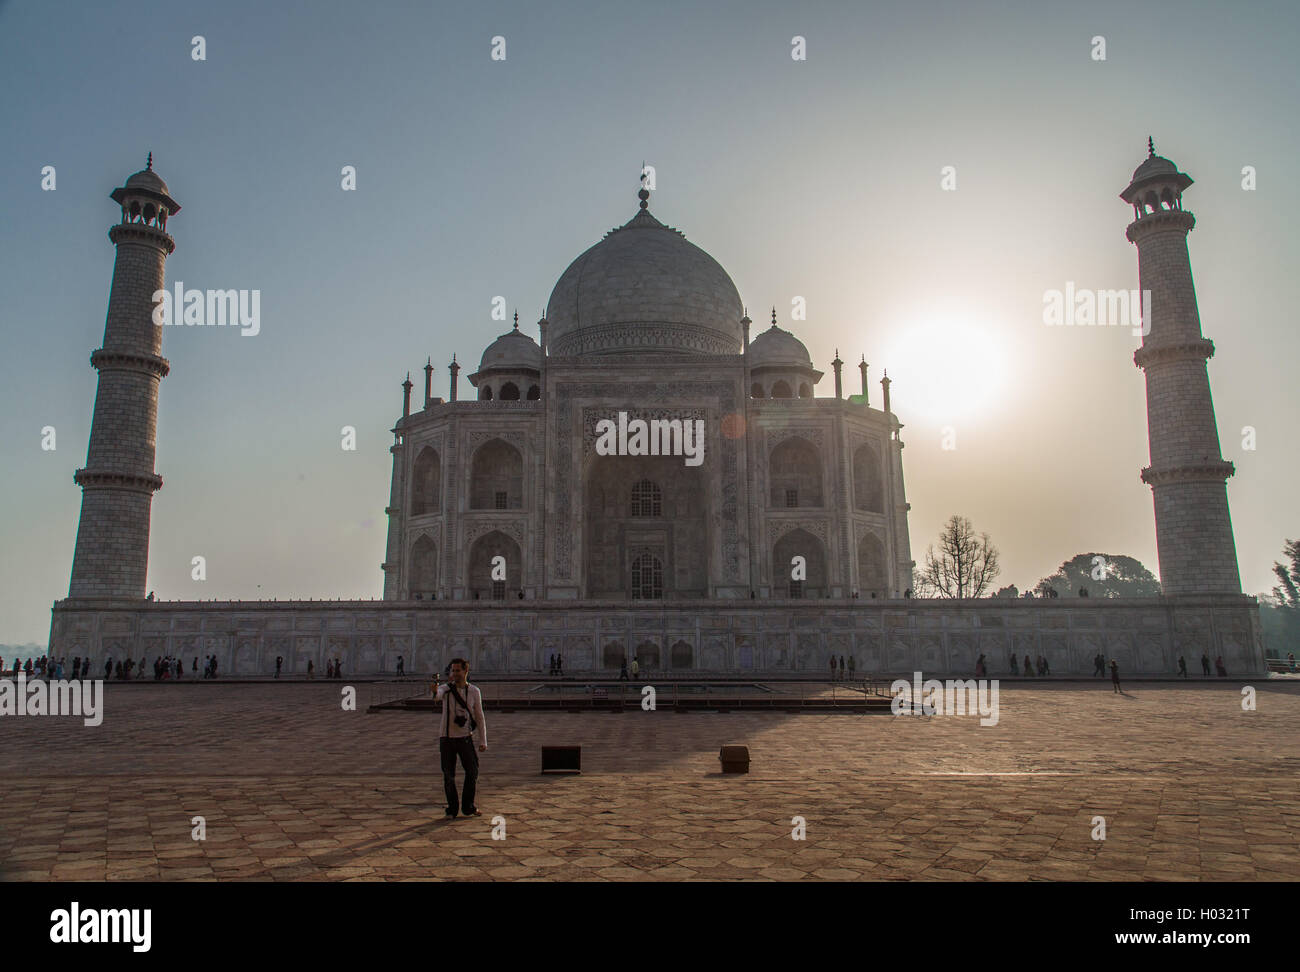 AGRA, INDIA - 28 FEBRUARY 2015: Backlit view of Taj Mahal from West side with tourist taking selfie. - Stock Image